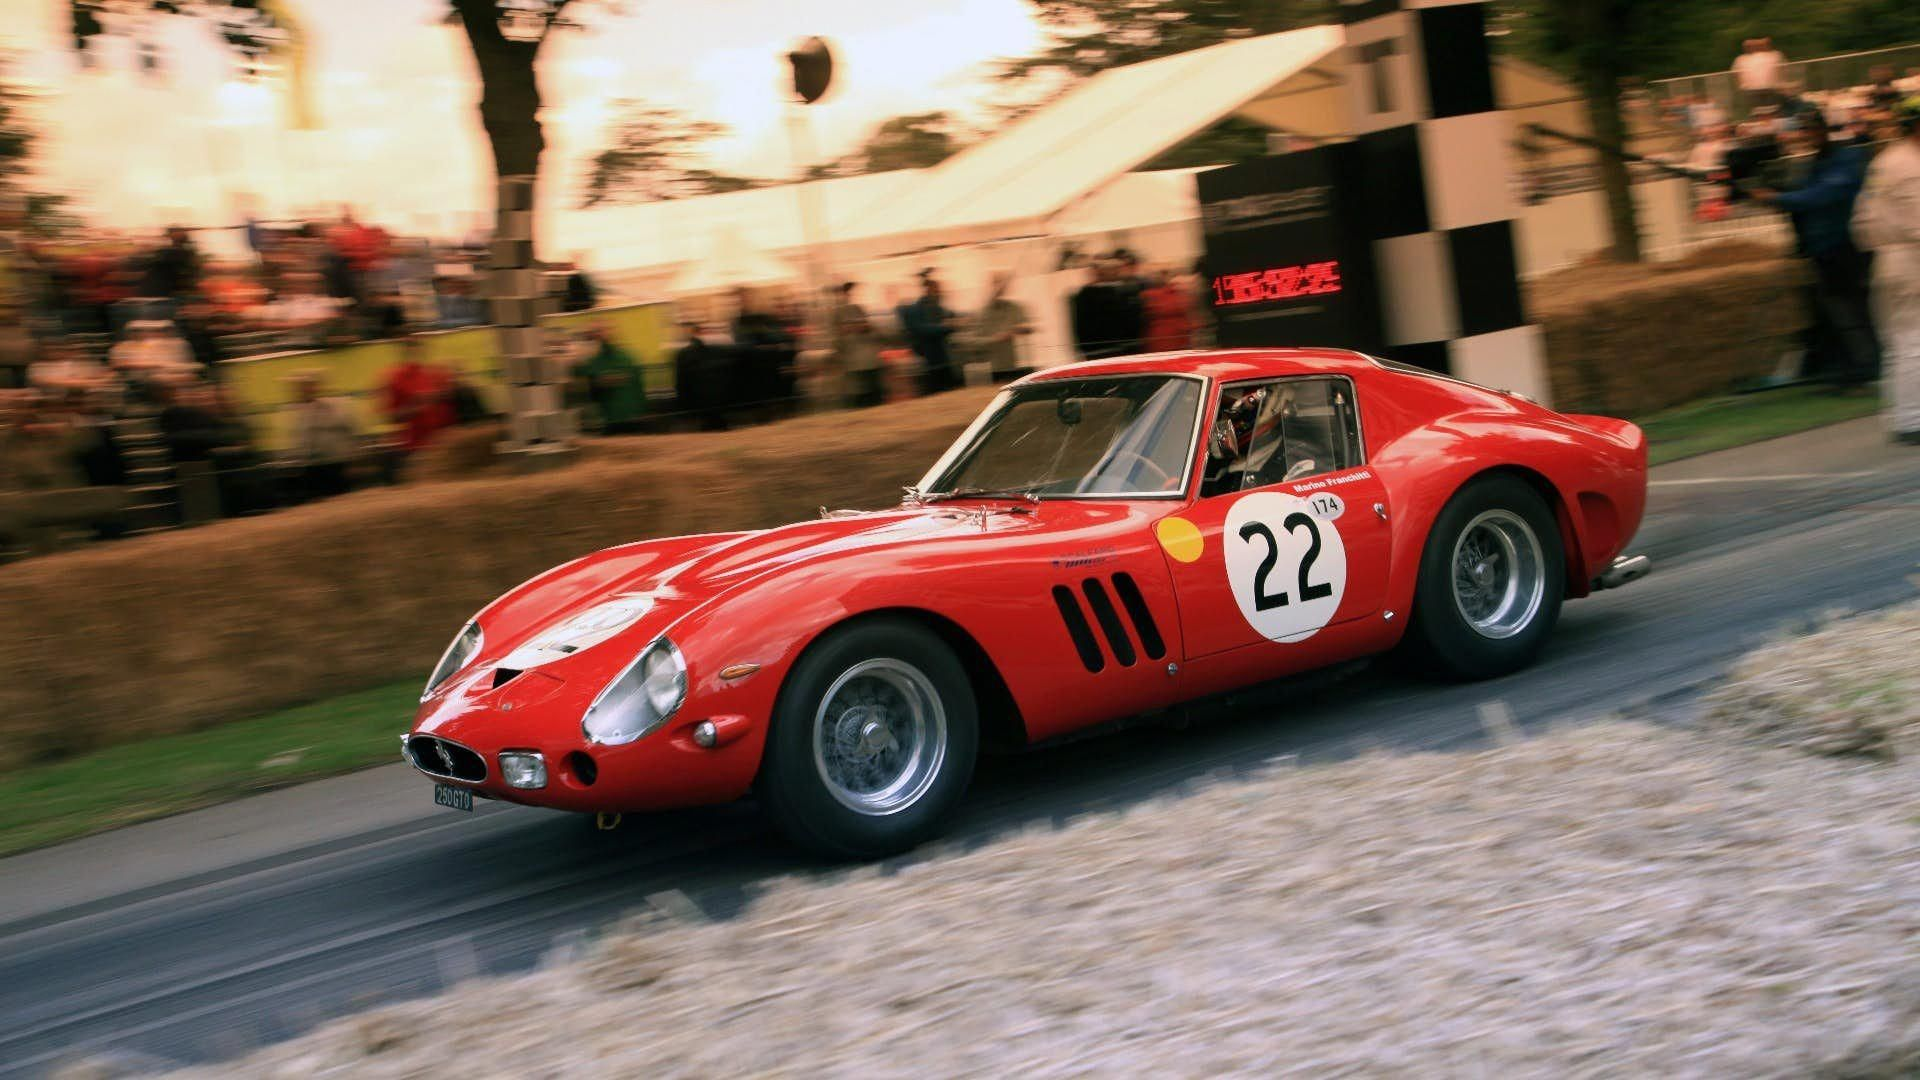 The Owner Of Ferrari 250 Gto 3757gt Is Nick Mason The Drummer In Pink Floyd The Thefast Theluxurious Classic Cars Expensive Cars Gto Car